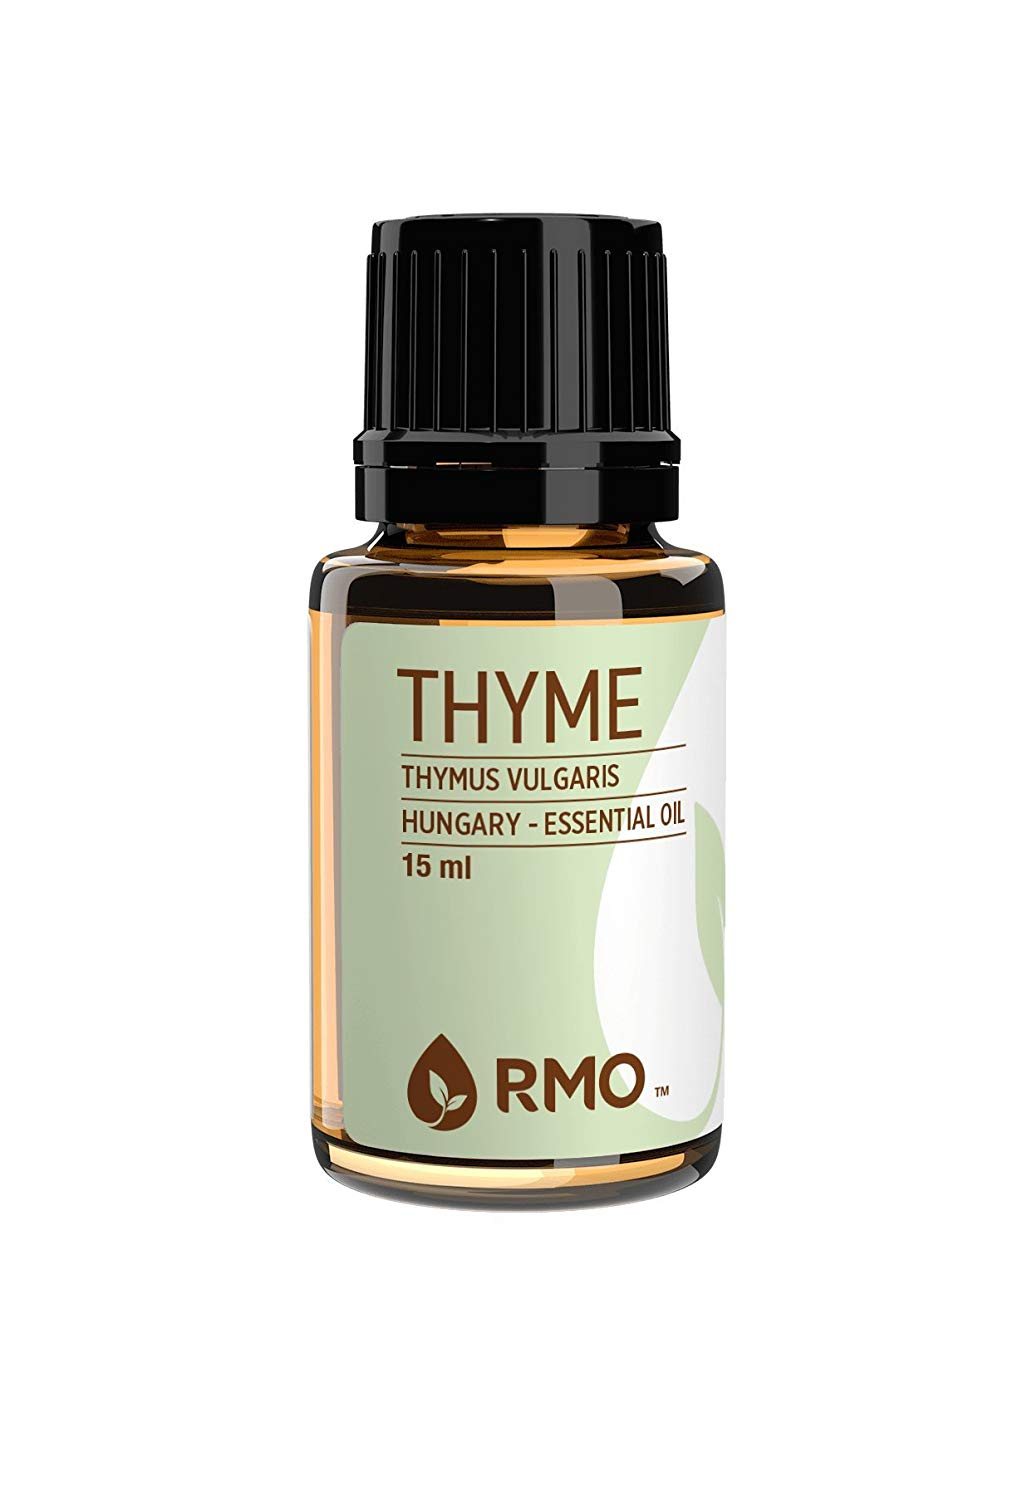 Thyme oil benefits for anxiety and inflammation